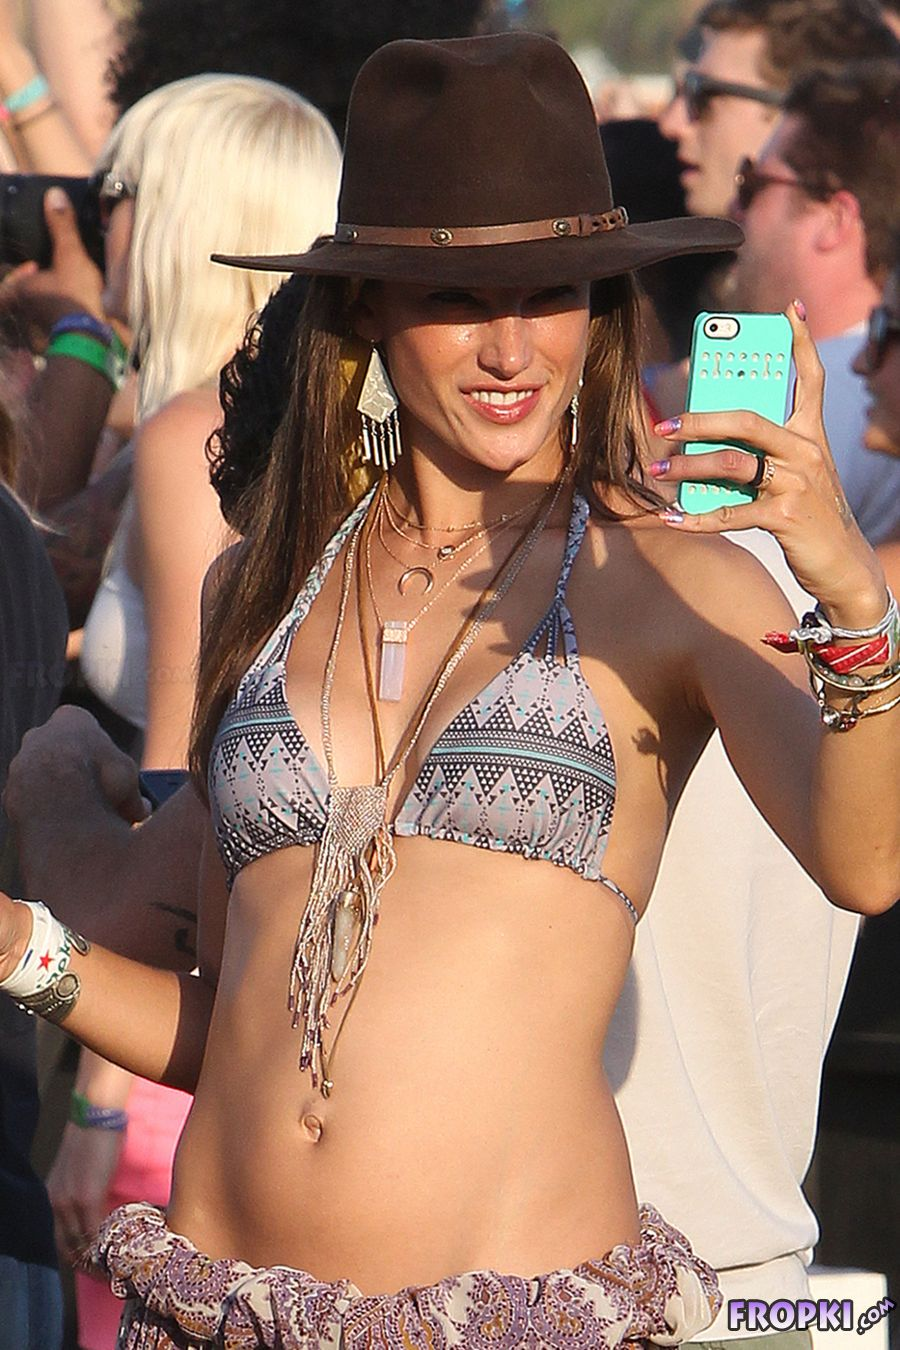 Alessandra Ambrosio in Bikini Top in Coachella